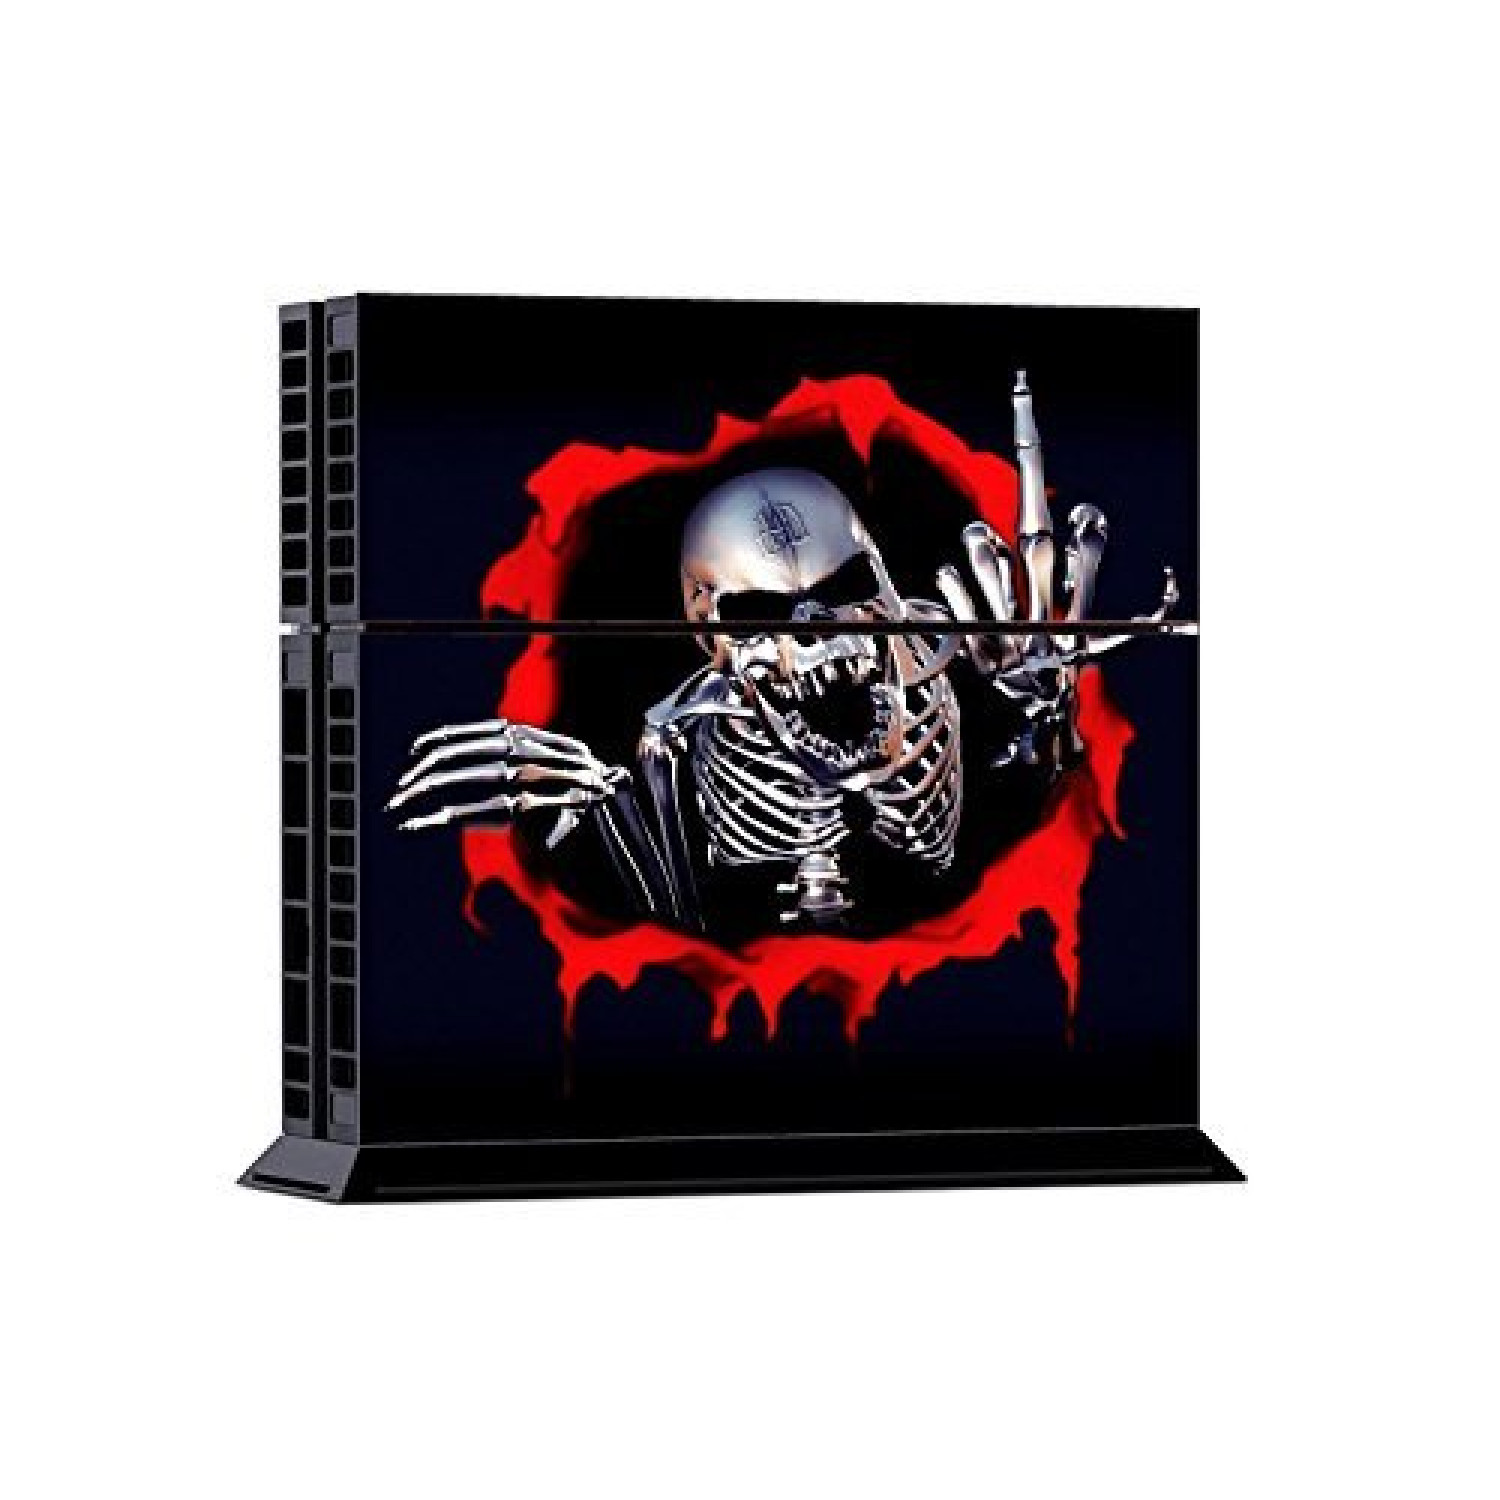 Playstation 4 Skin Sticker Pour La Console + Les 2 Controleurs - Skeleton